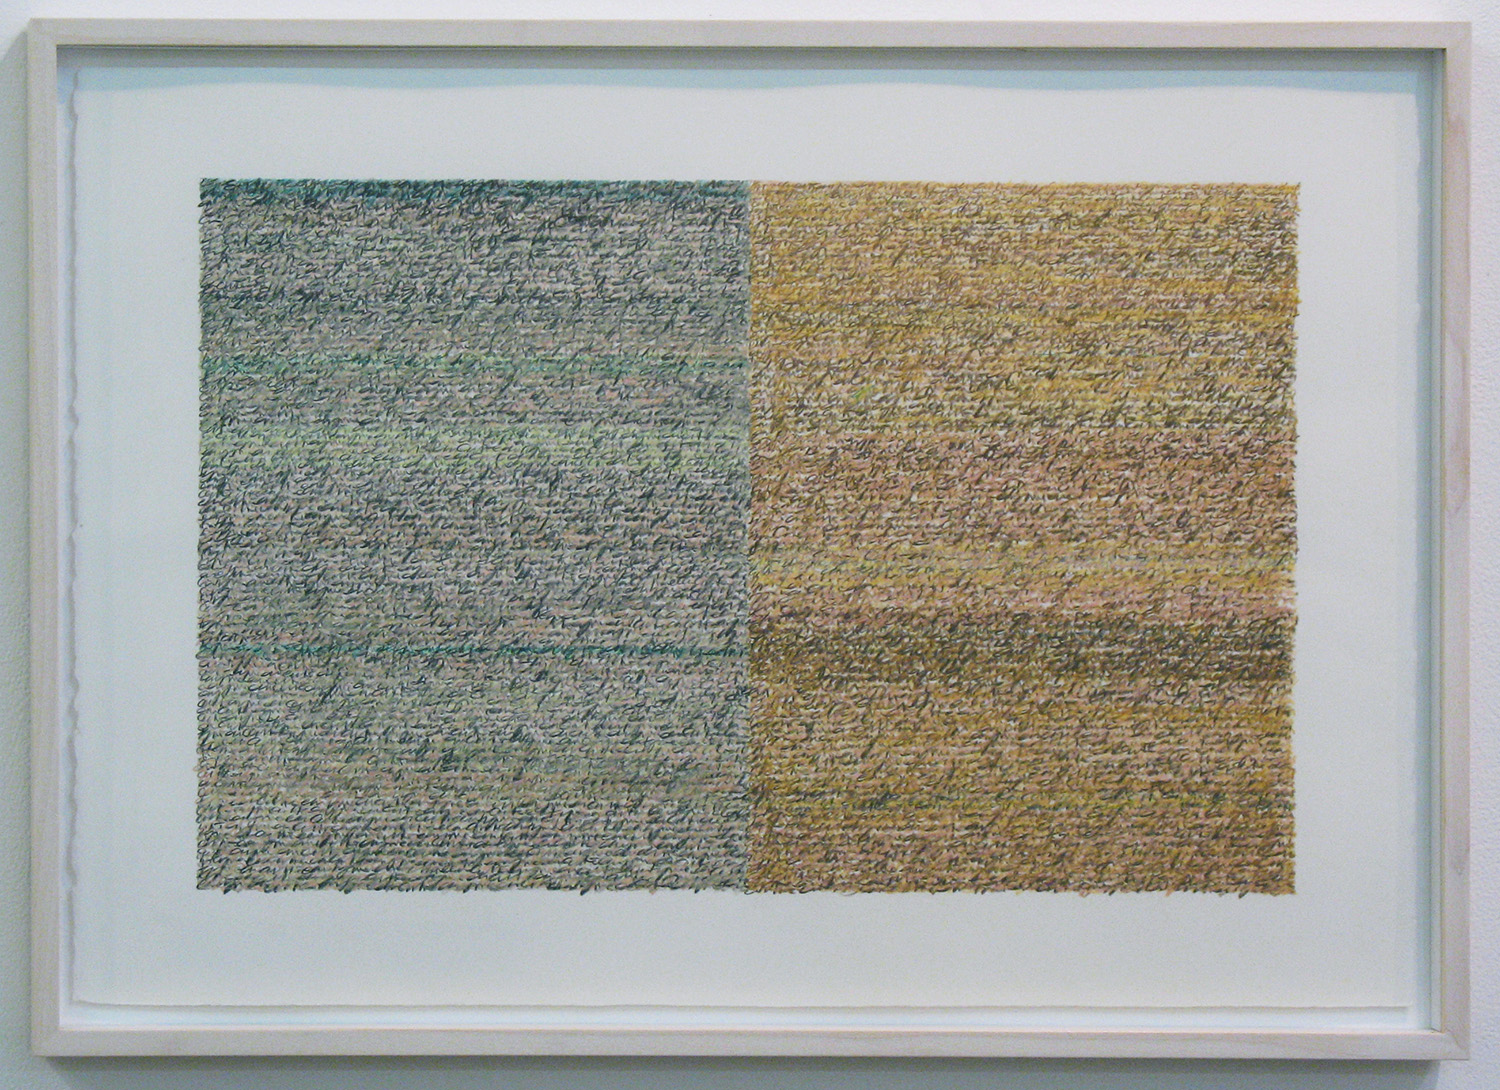 Silent Sound 3 <br>pigment pencil on paper, 38.5 x 56.5 cm (paper size), 2008